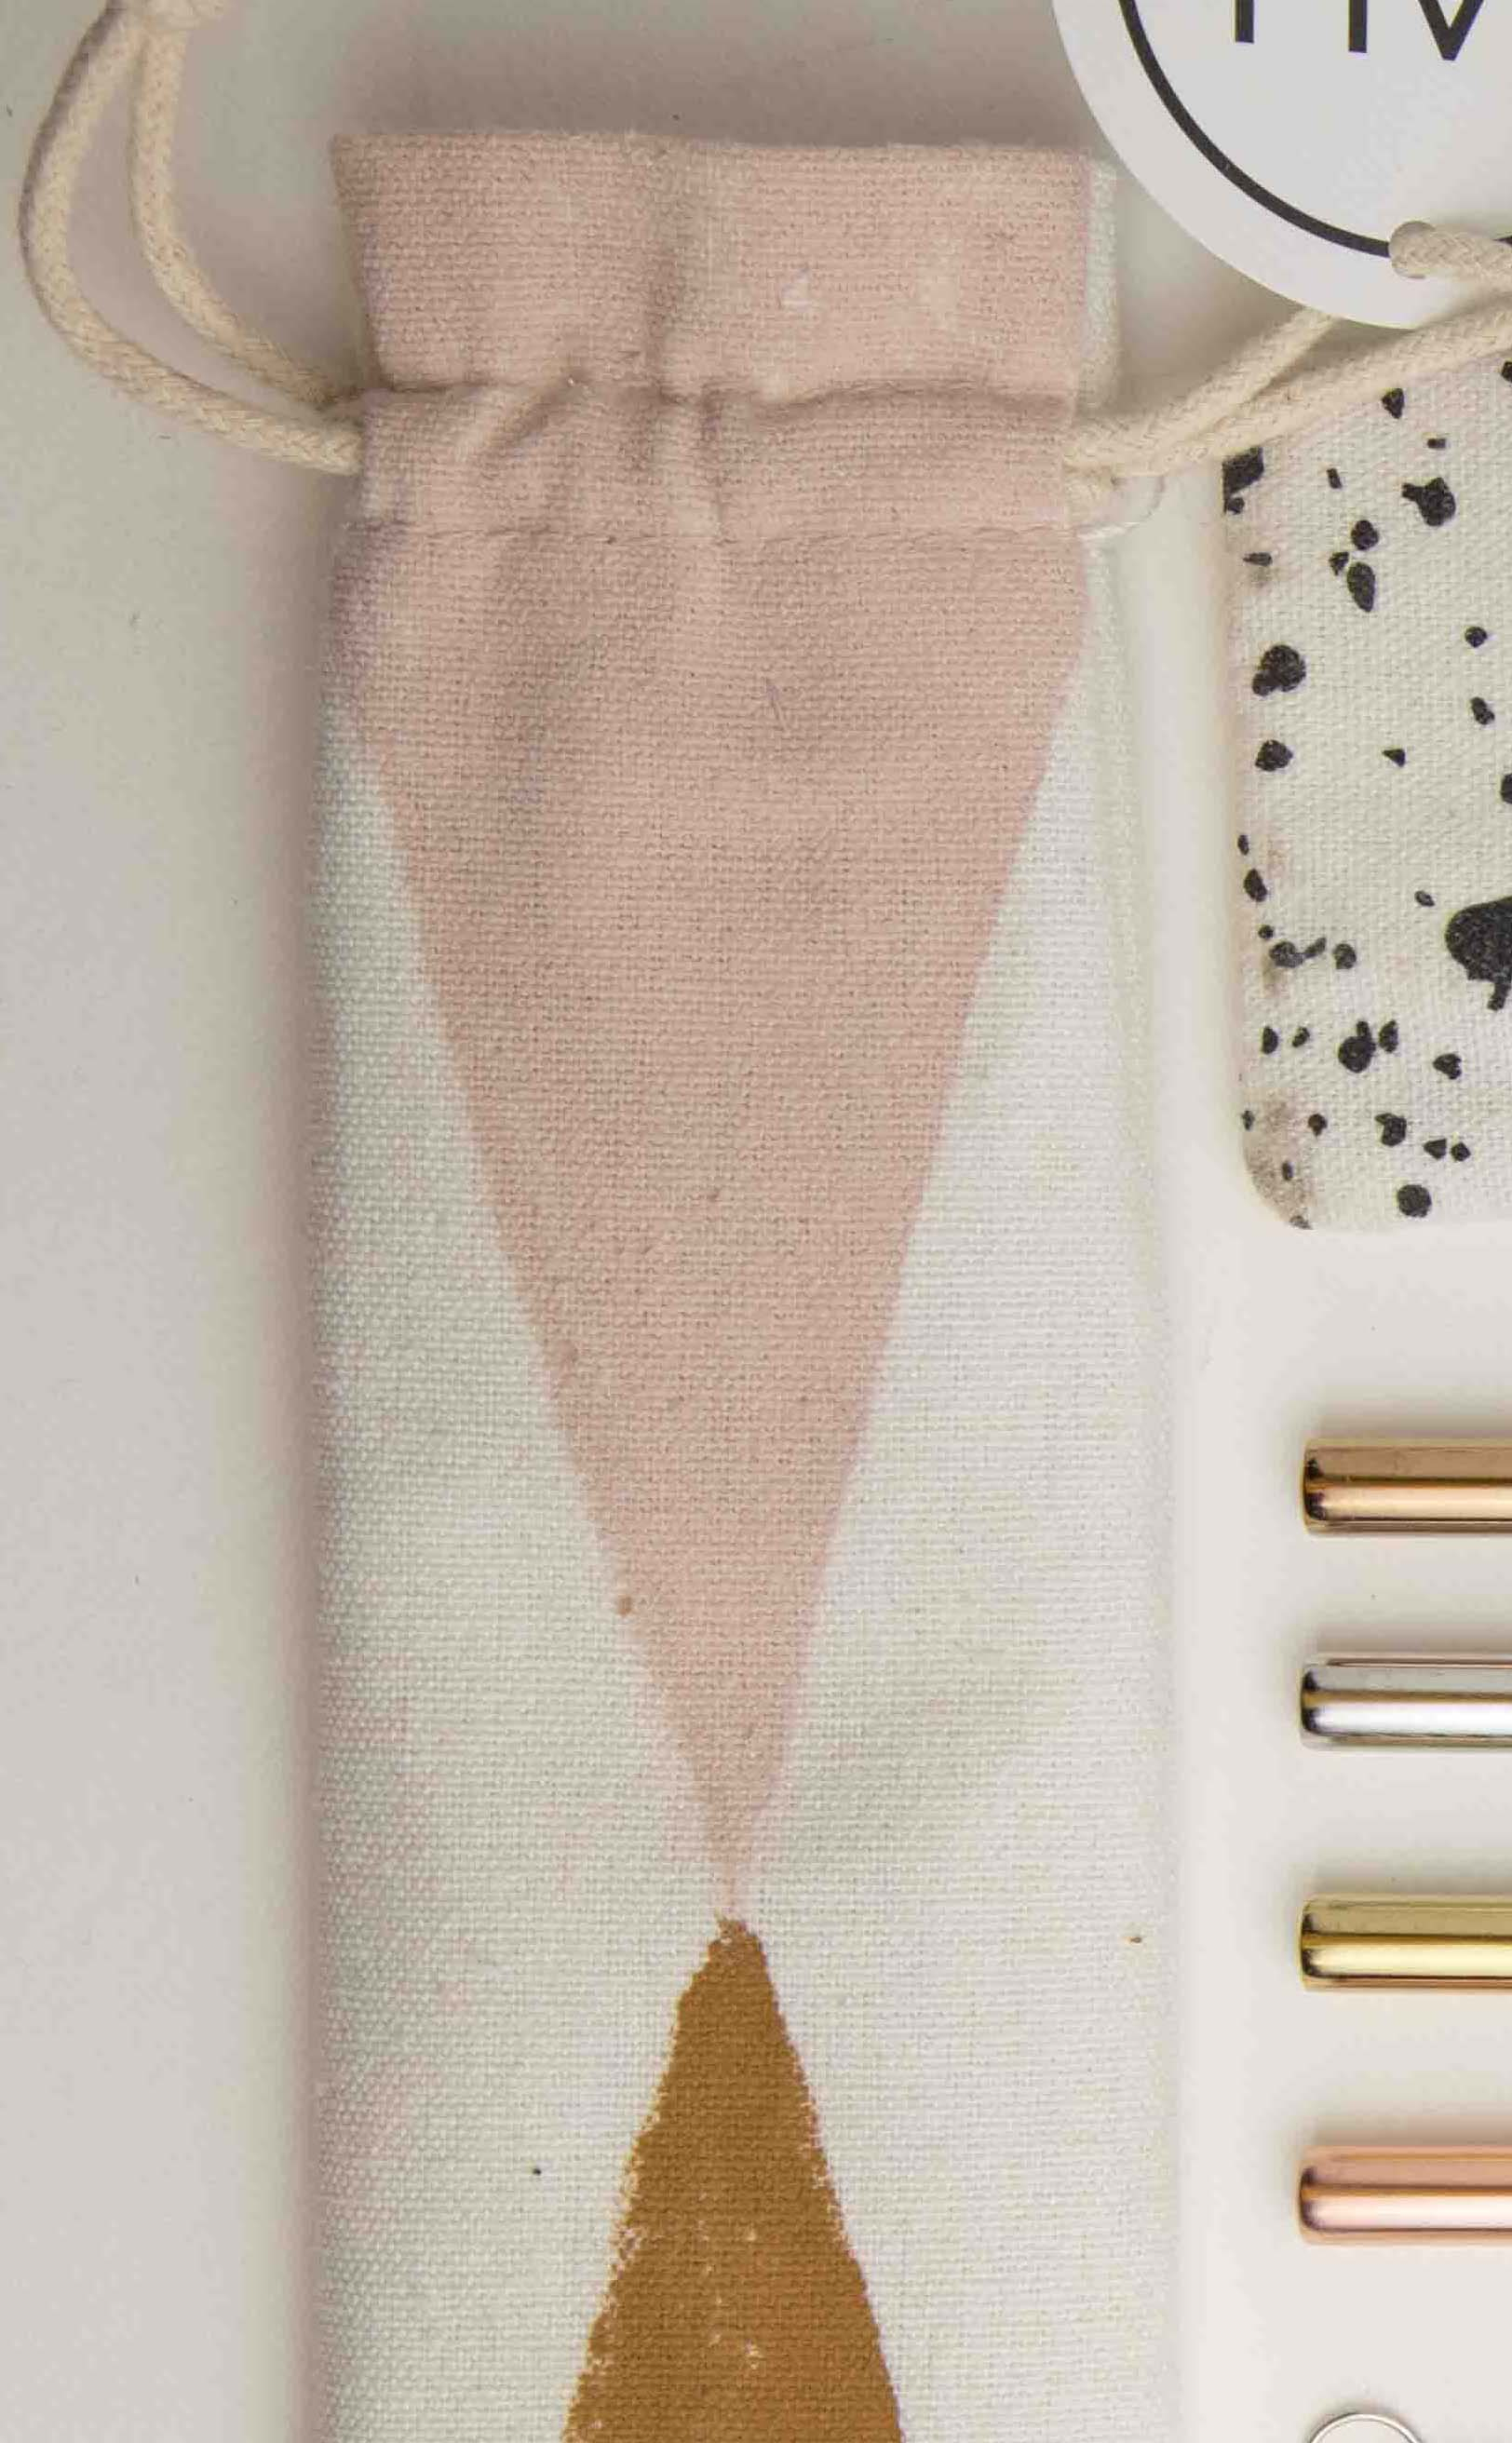 Patterned- Reusable Straw Set with Cotton Pouch